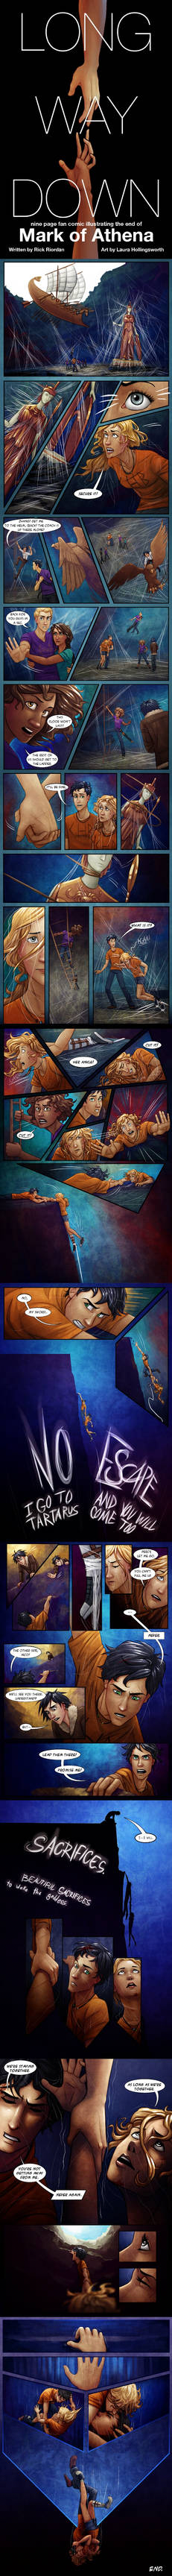 Long Way Down - Complete Comic - Mark of Athena